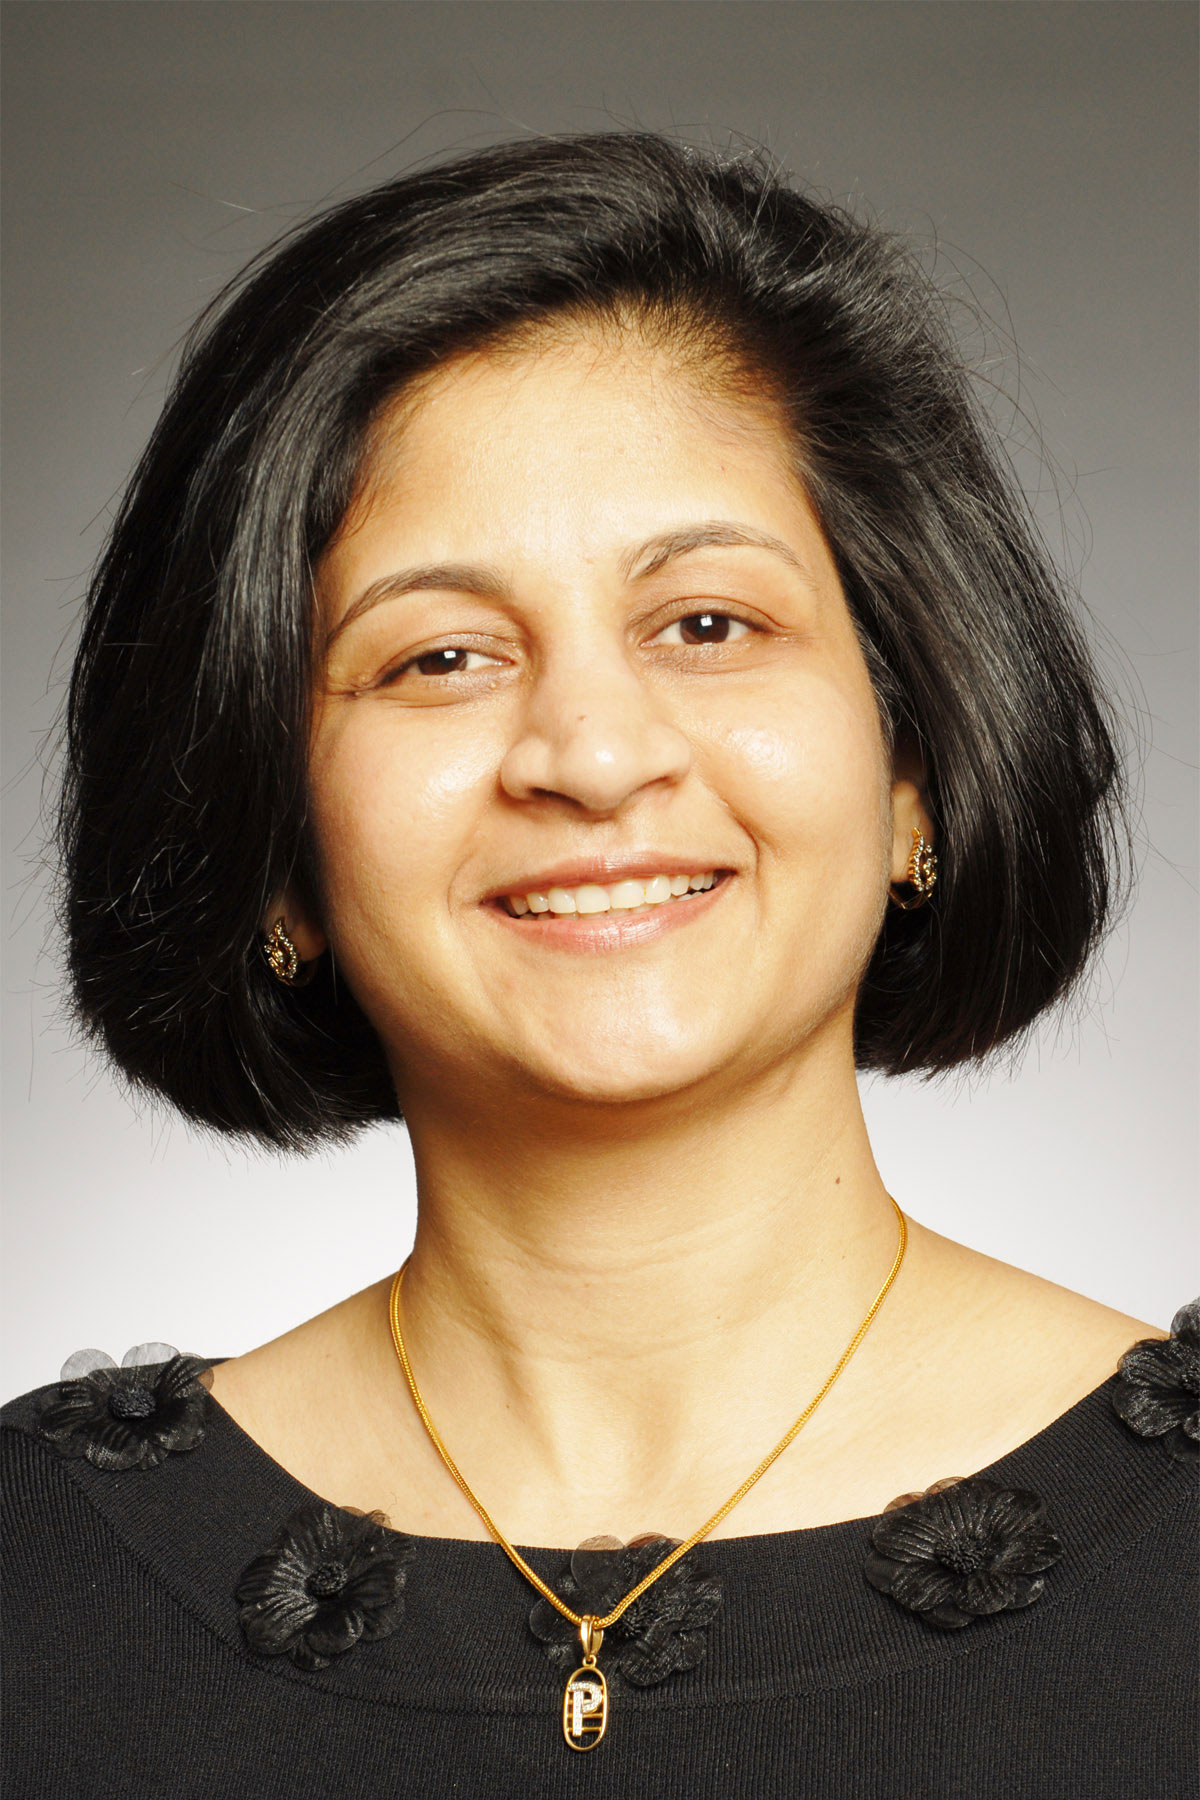 A photo of Parinda Mehta.